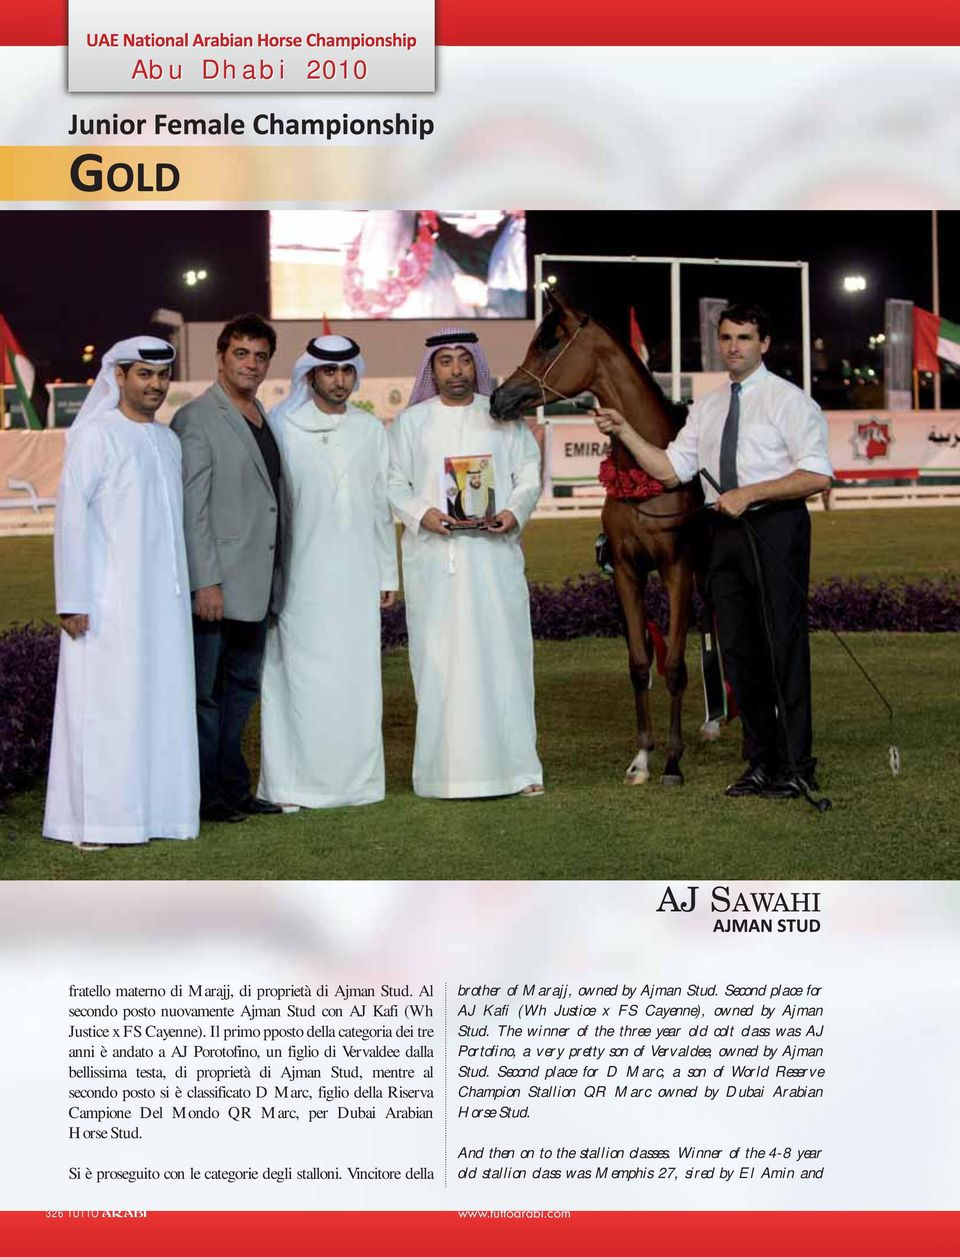 figlio della Riserva Campione Del Mondo QR Marc, per Dubai Arabian Horse Stud. Si è proseguito con le categorie degli stalloni. Vincitore della brother of Marajj, owned by Ajman Stud.